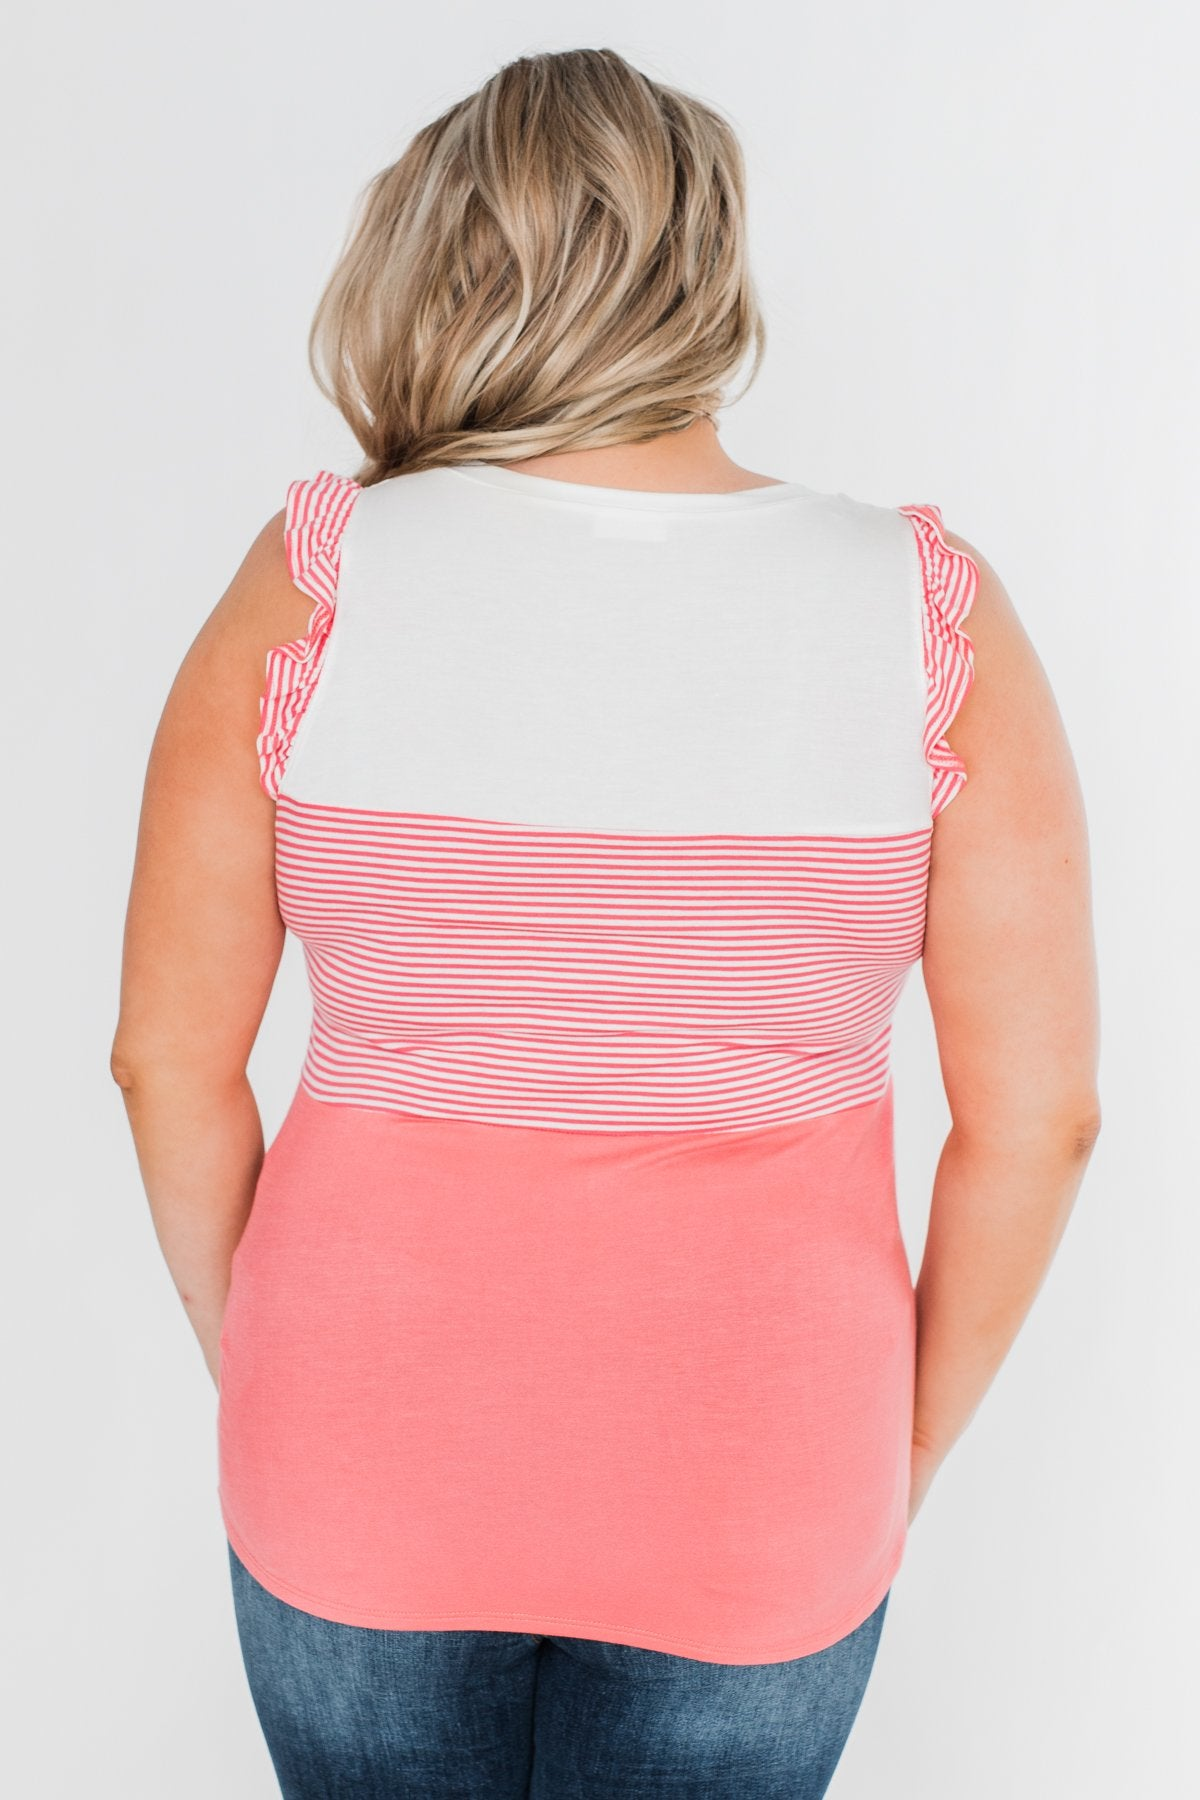 The Sweetest Thing Color Block Tank Top- Coral